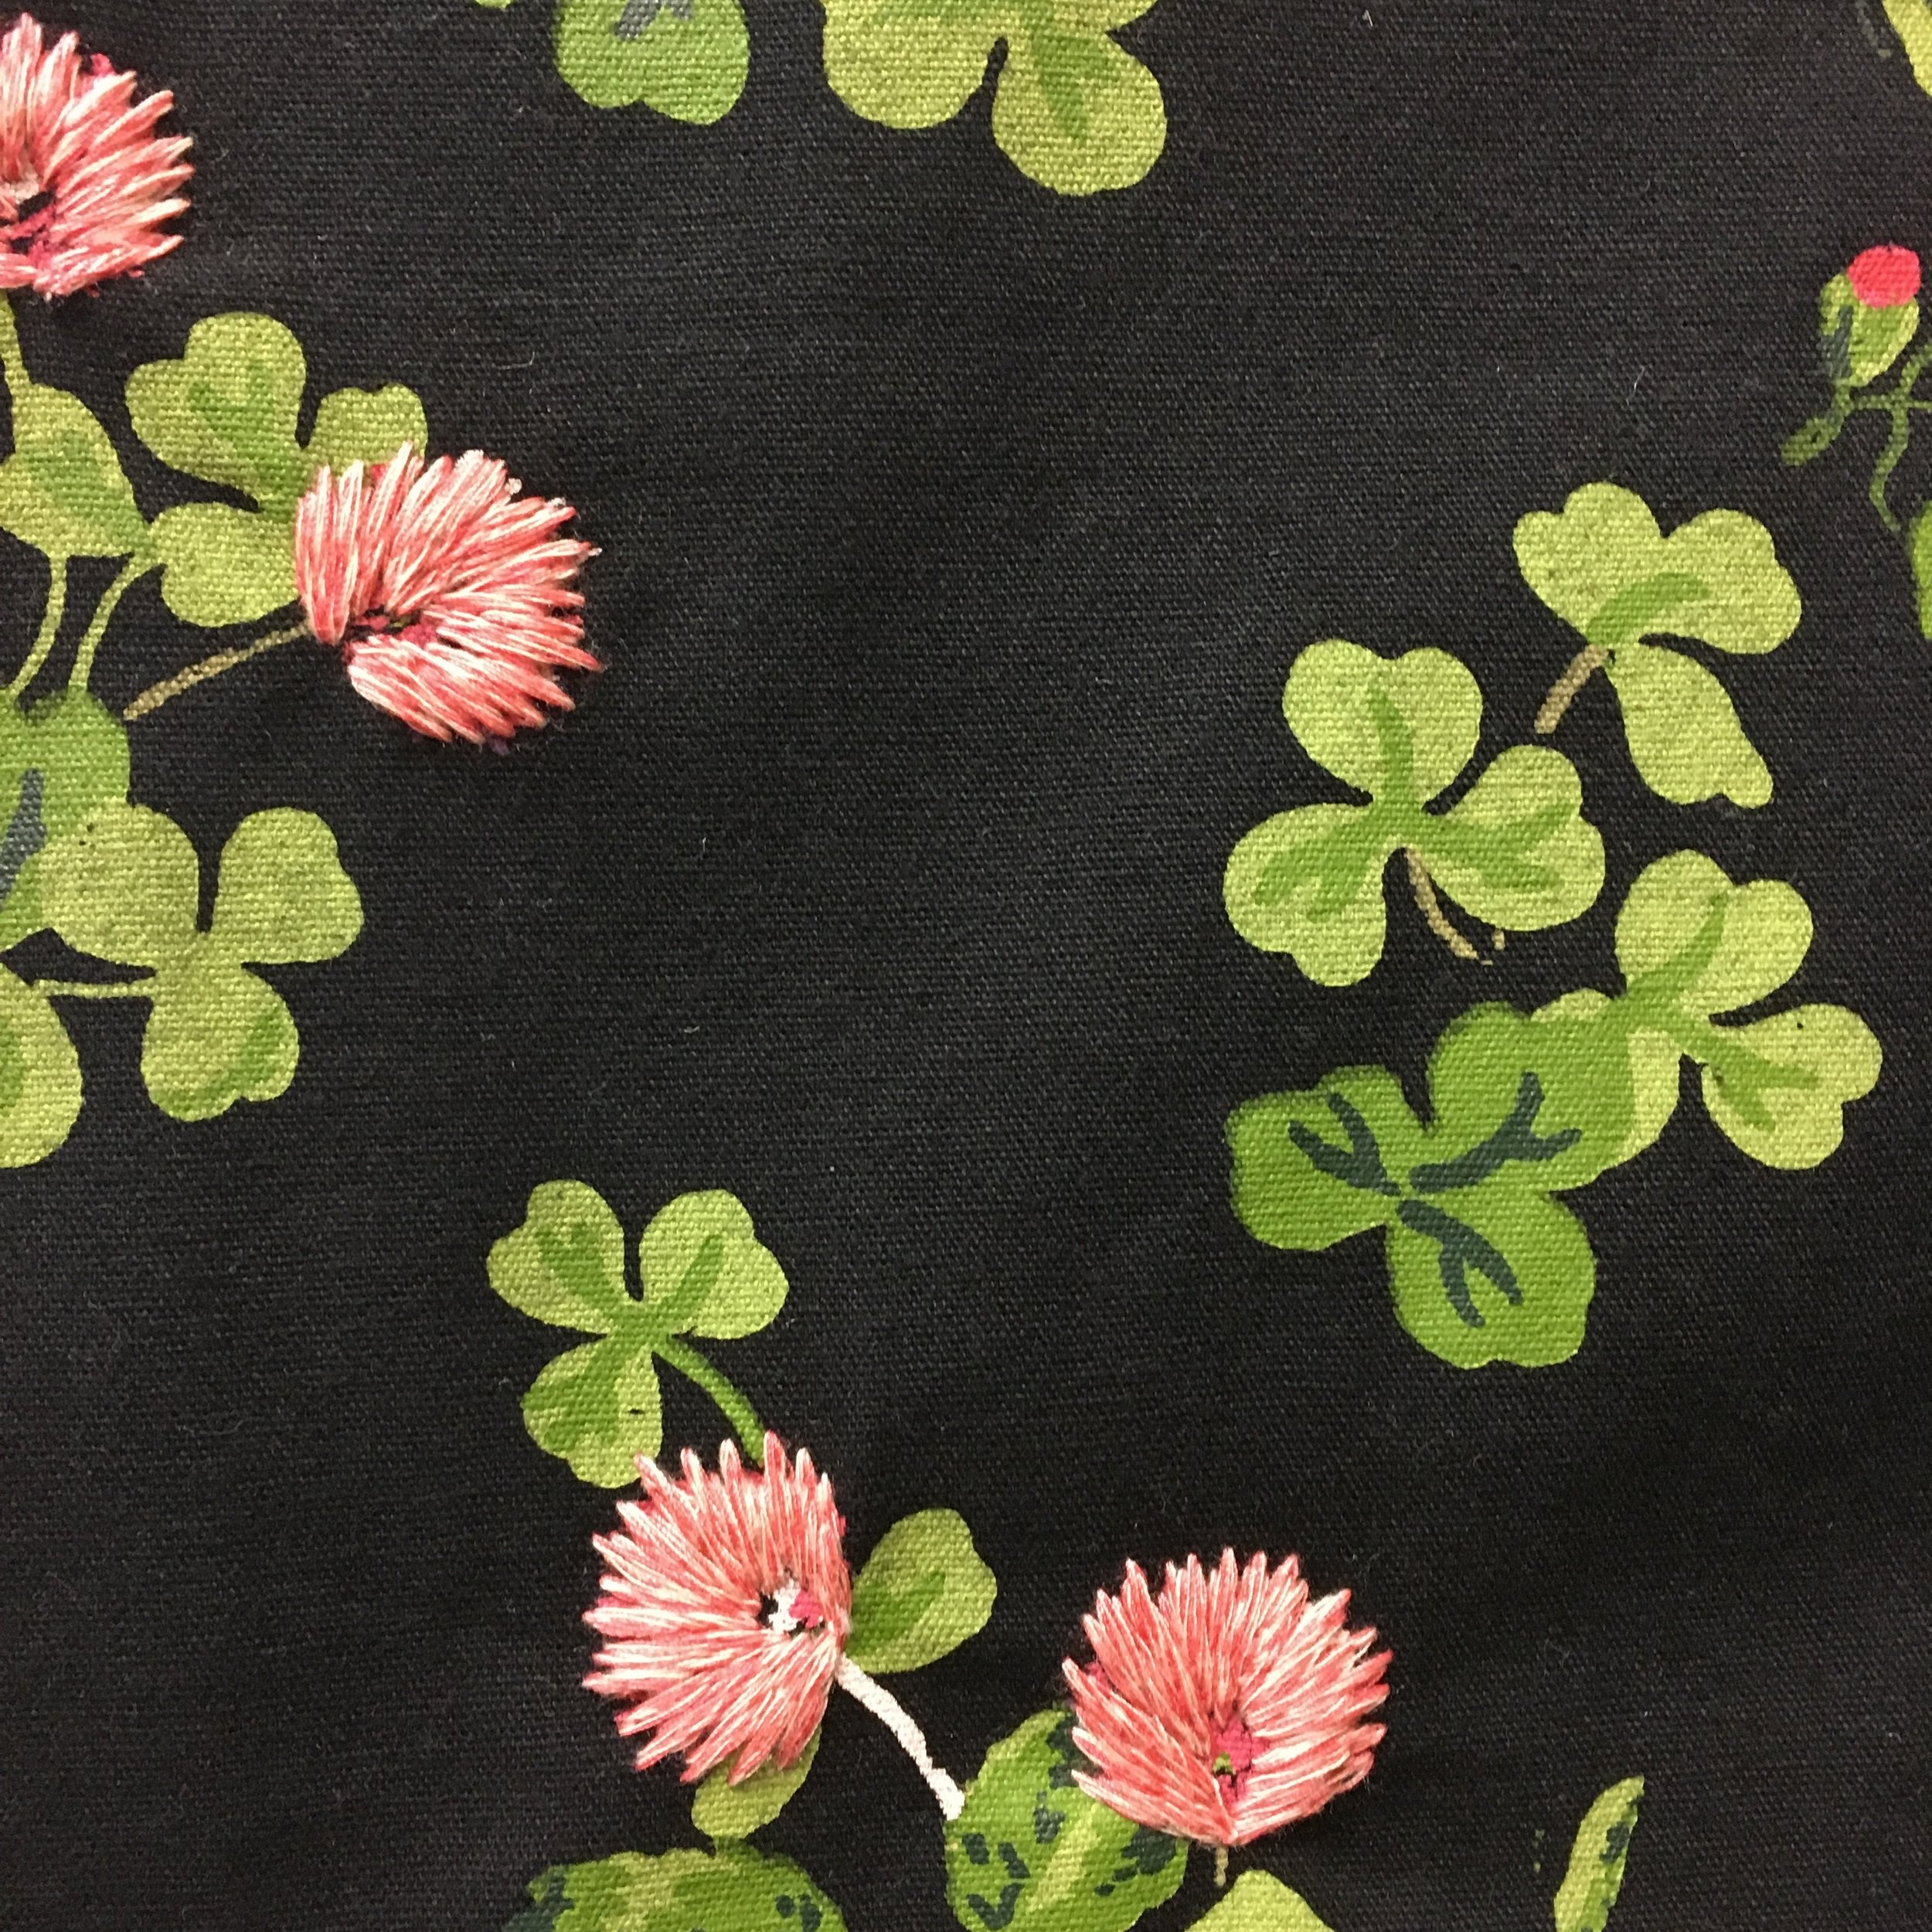 A dramatic black background makes this printed and embroidered floral pop